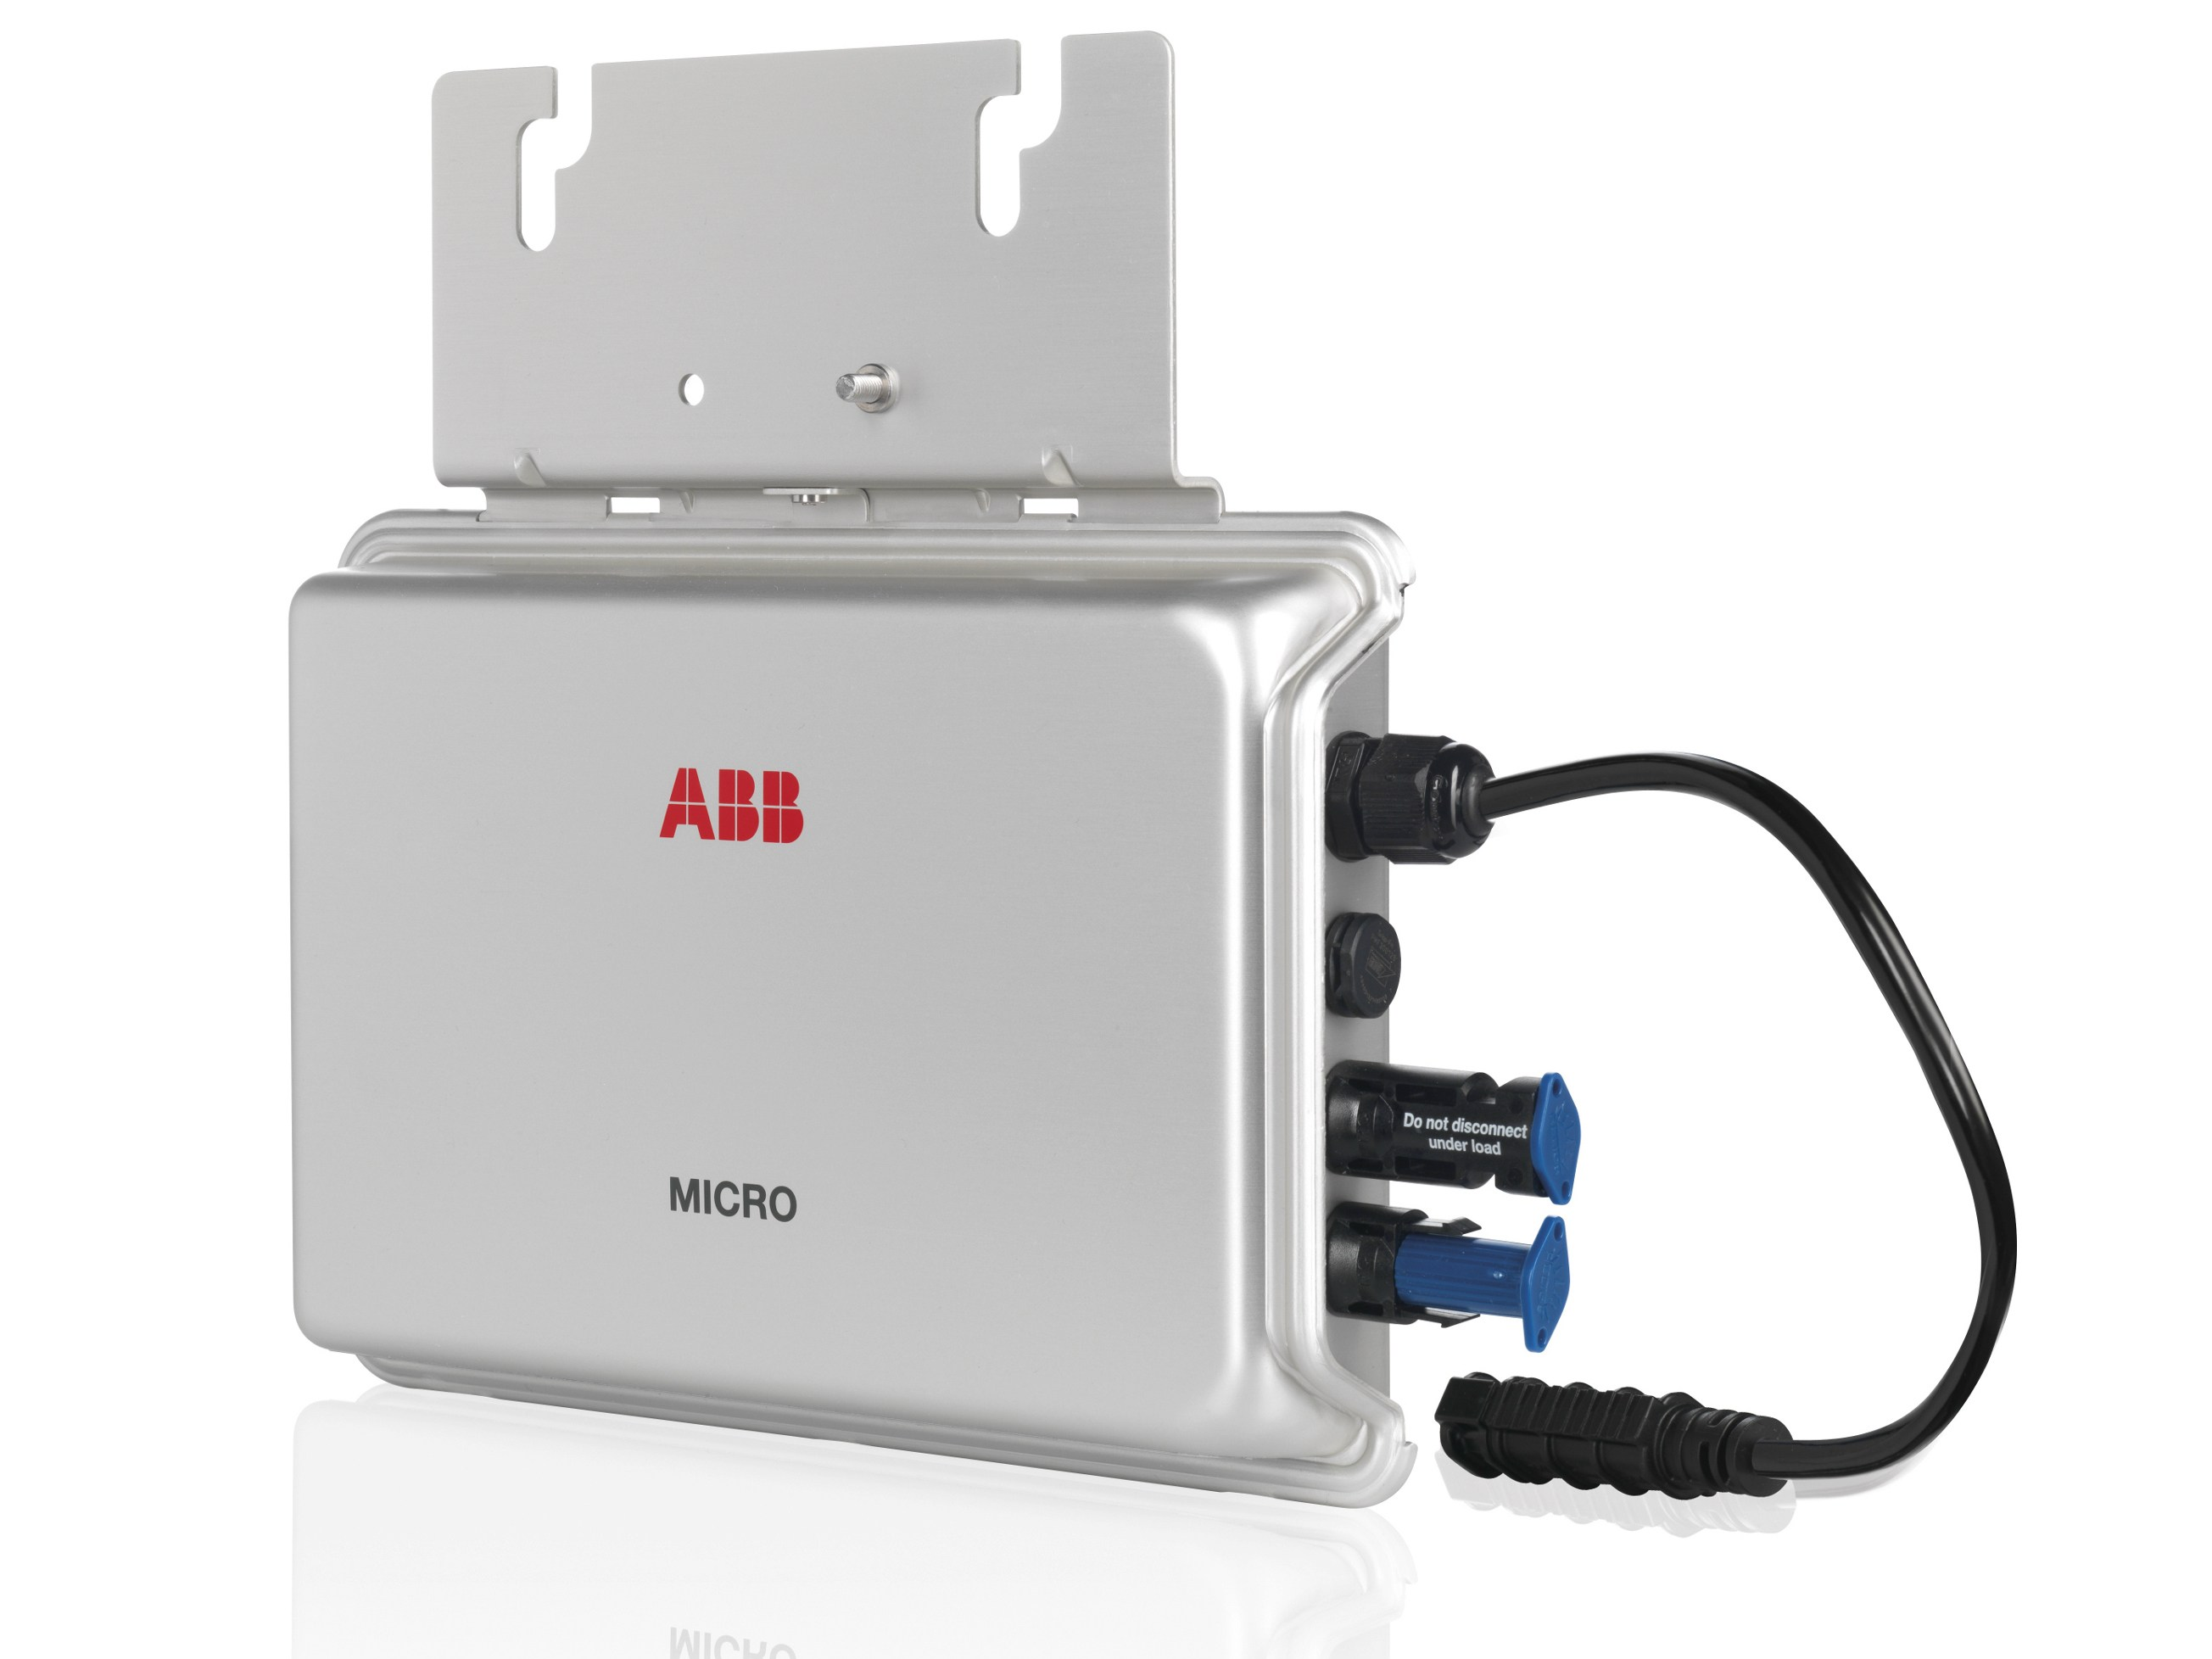 ABB India to install solar inverters at 750 railway stations in India